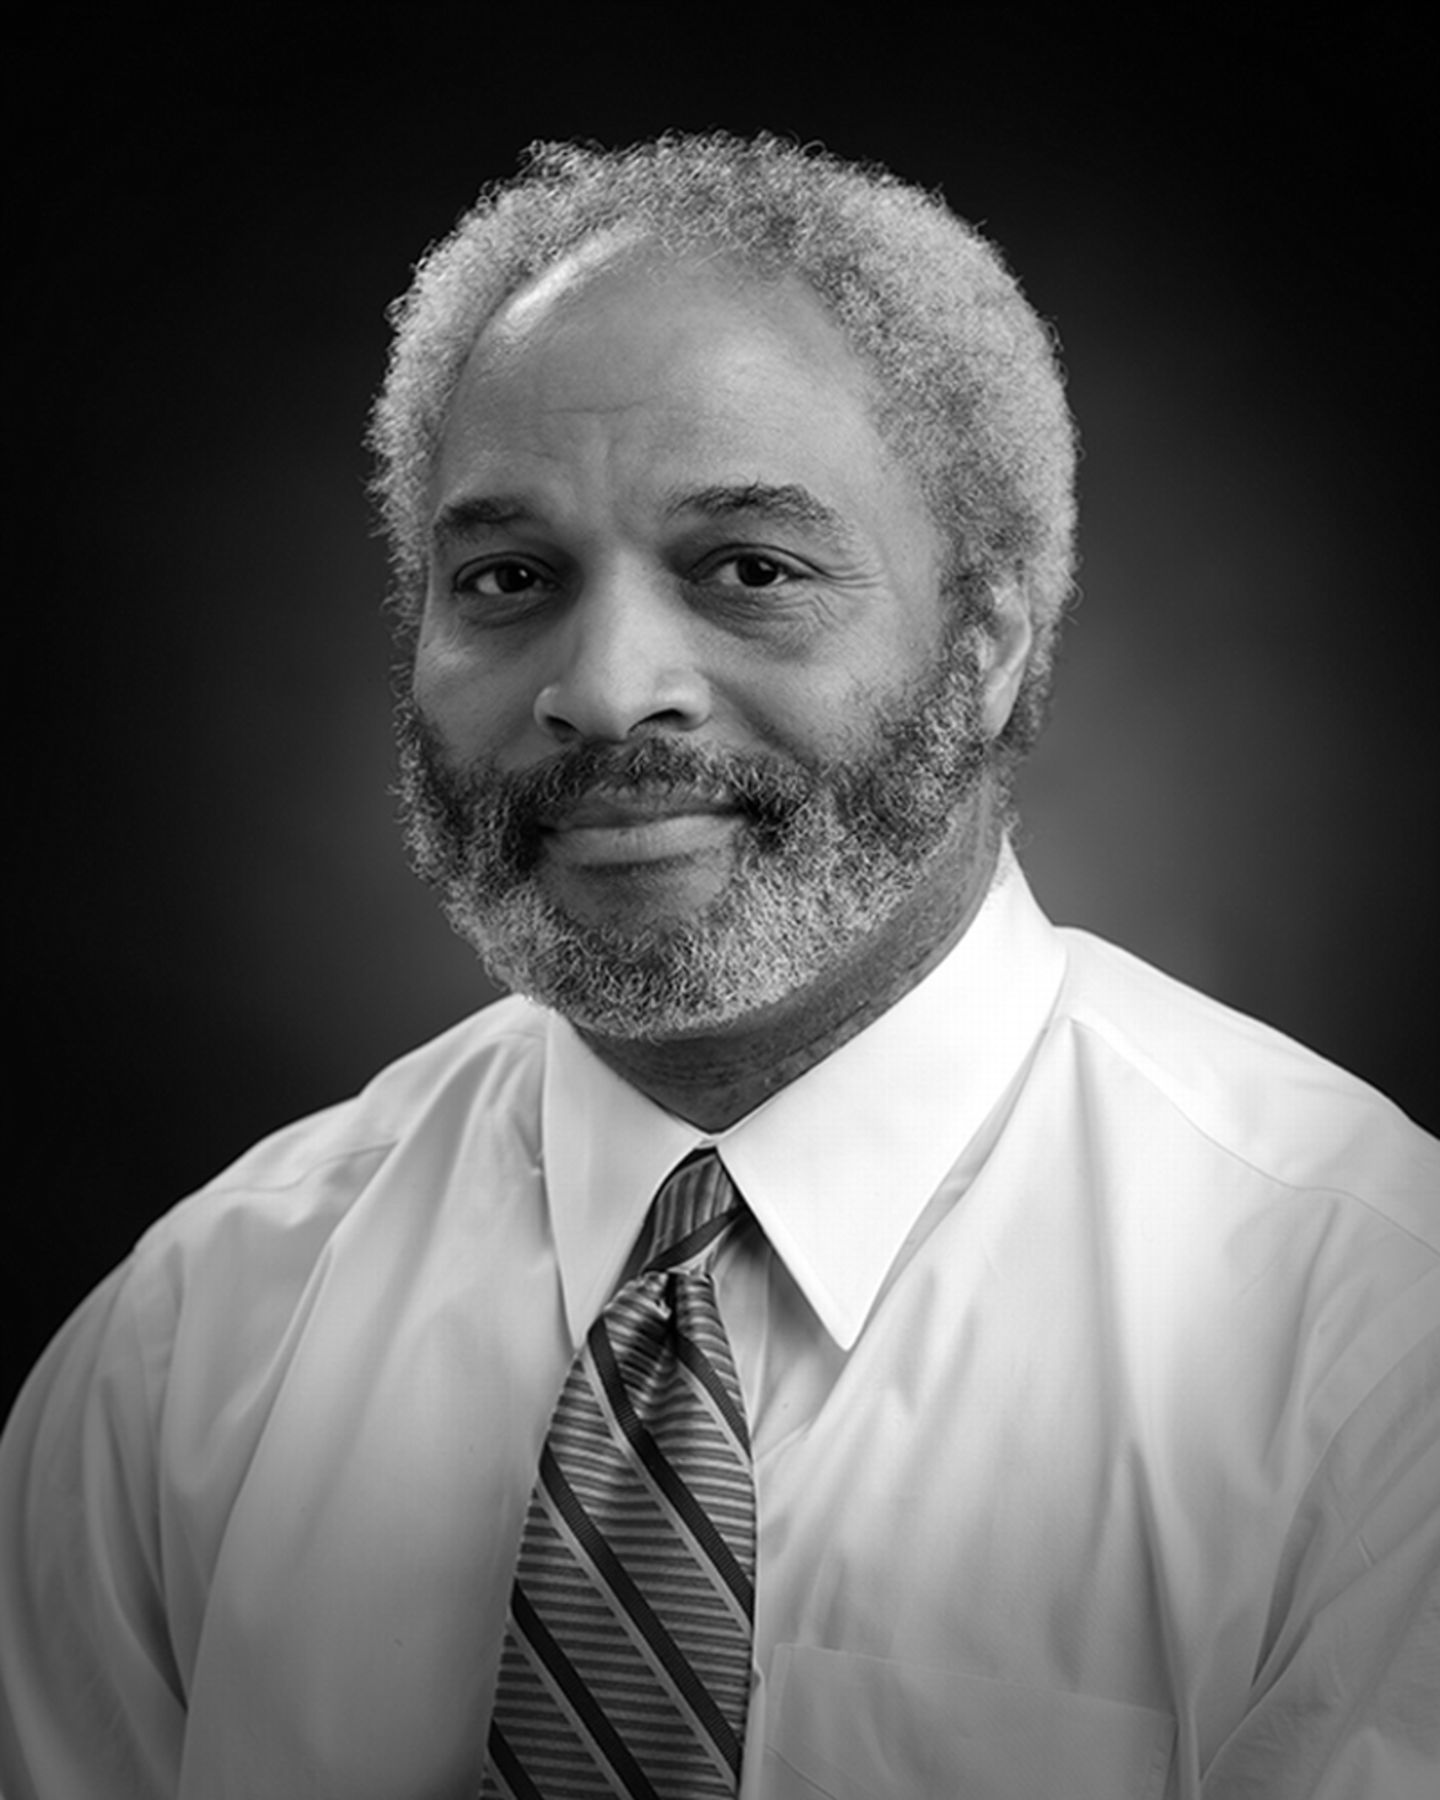 Dean of UCSF School of Medicine Named | Journal of